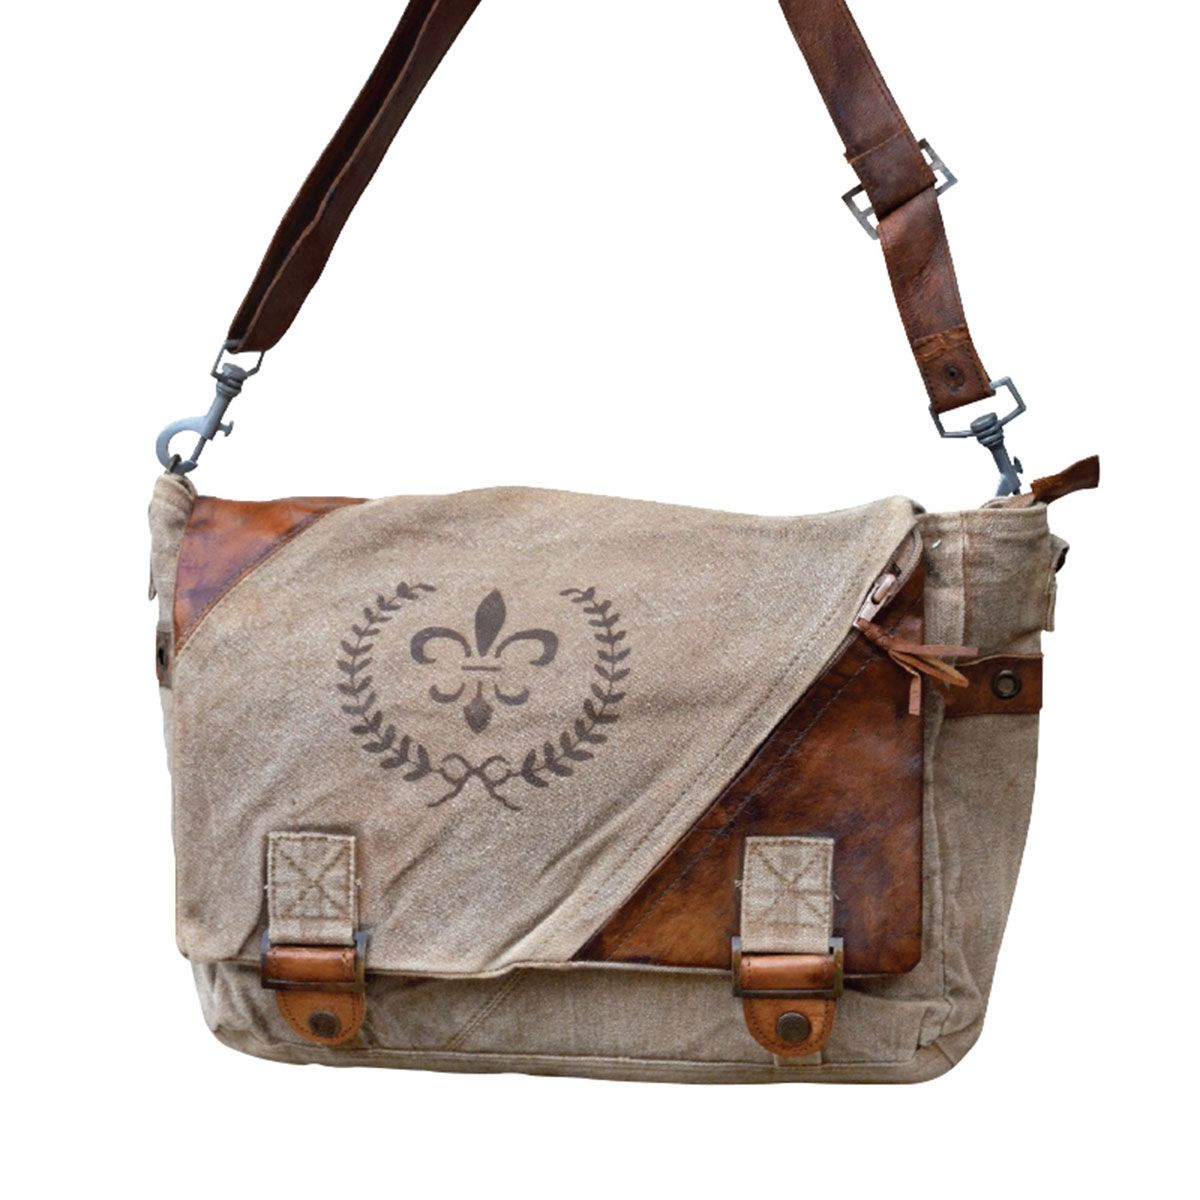 5d06b54acbd Fleur de Lys Canvas and Leather Purse with Flap by Clea Ray